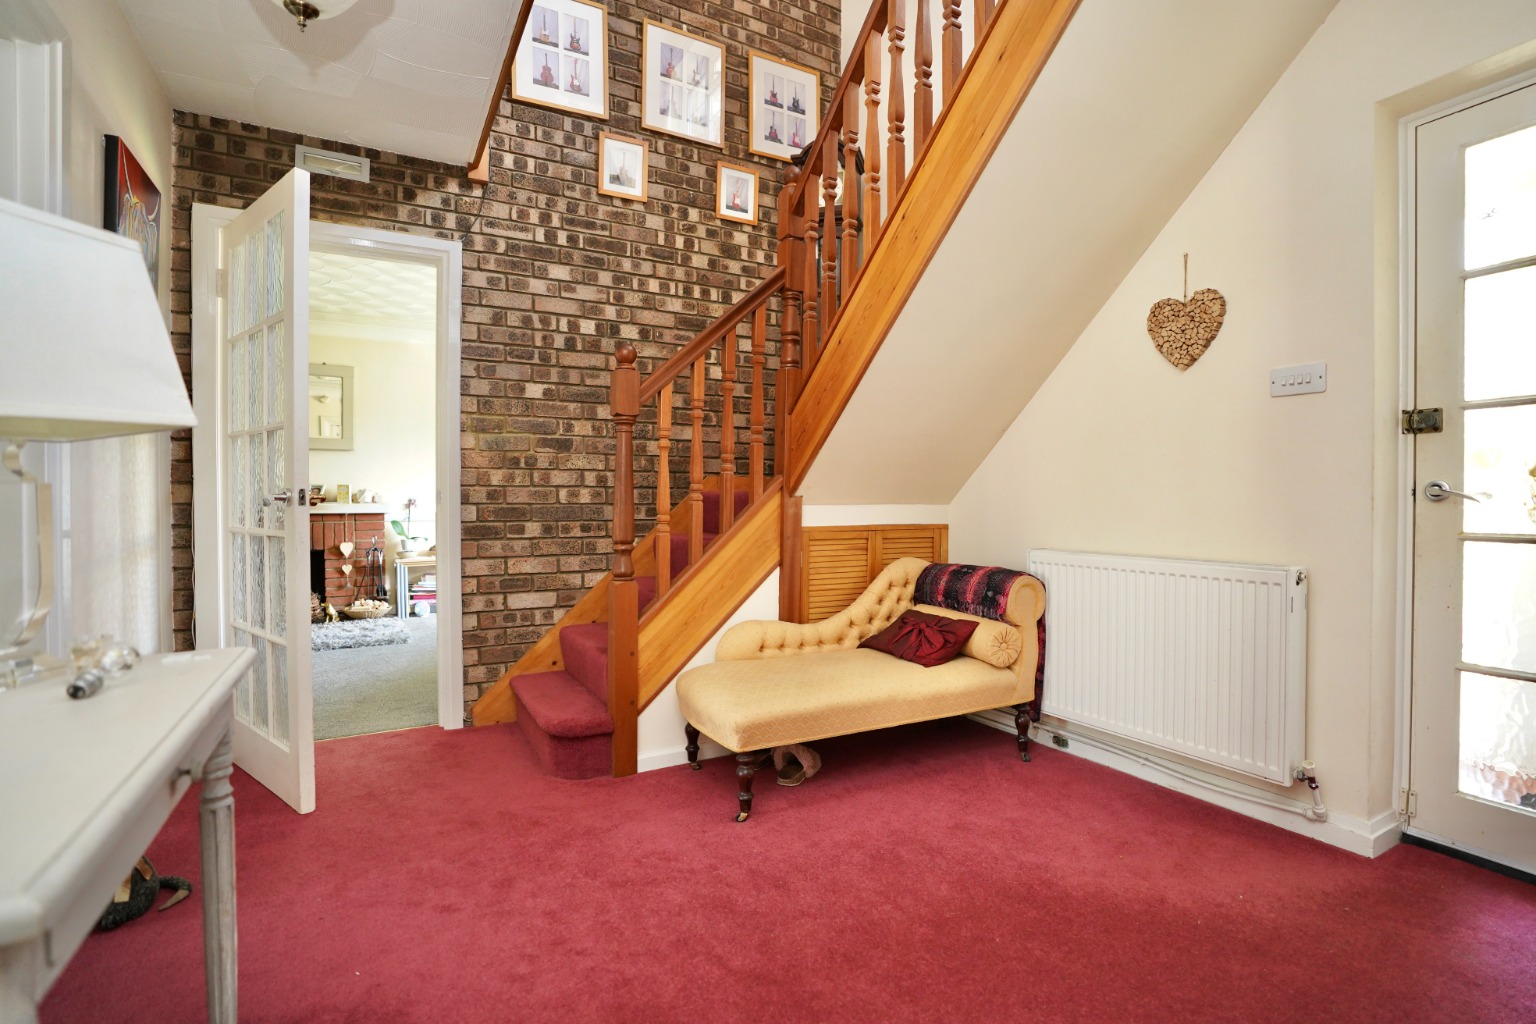 4 bed detached house for sale in Yeomans Close, Huntingdon  - Property Image 3